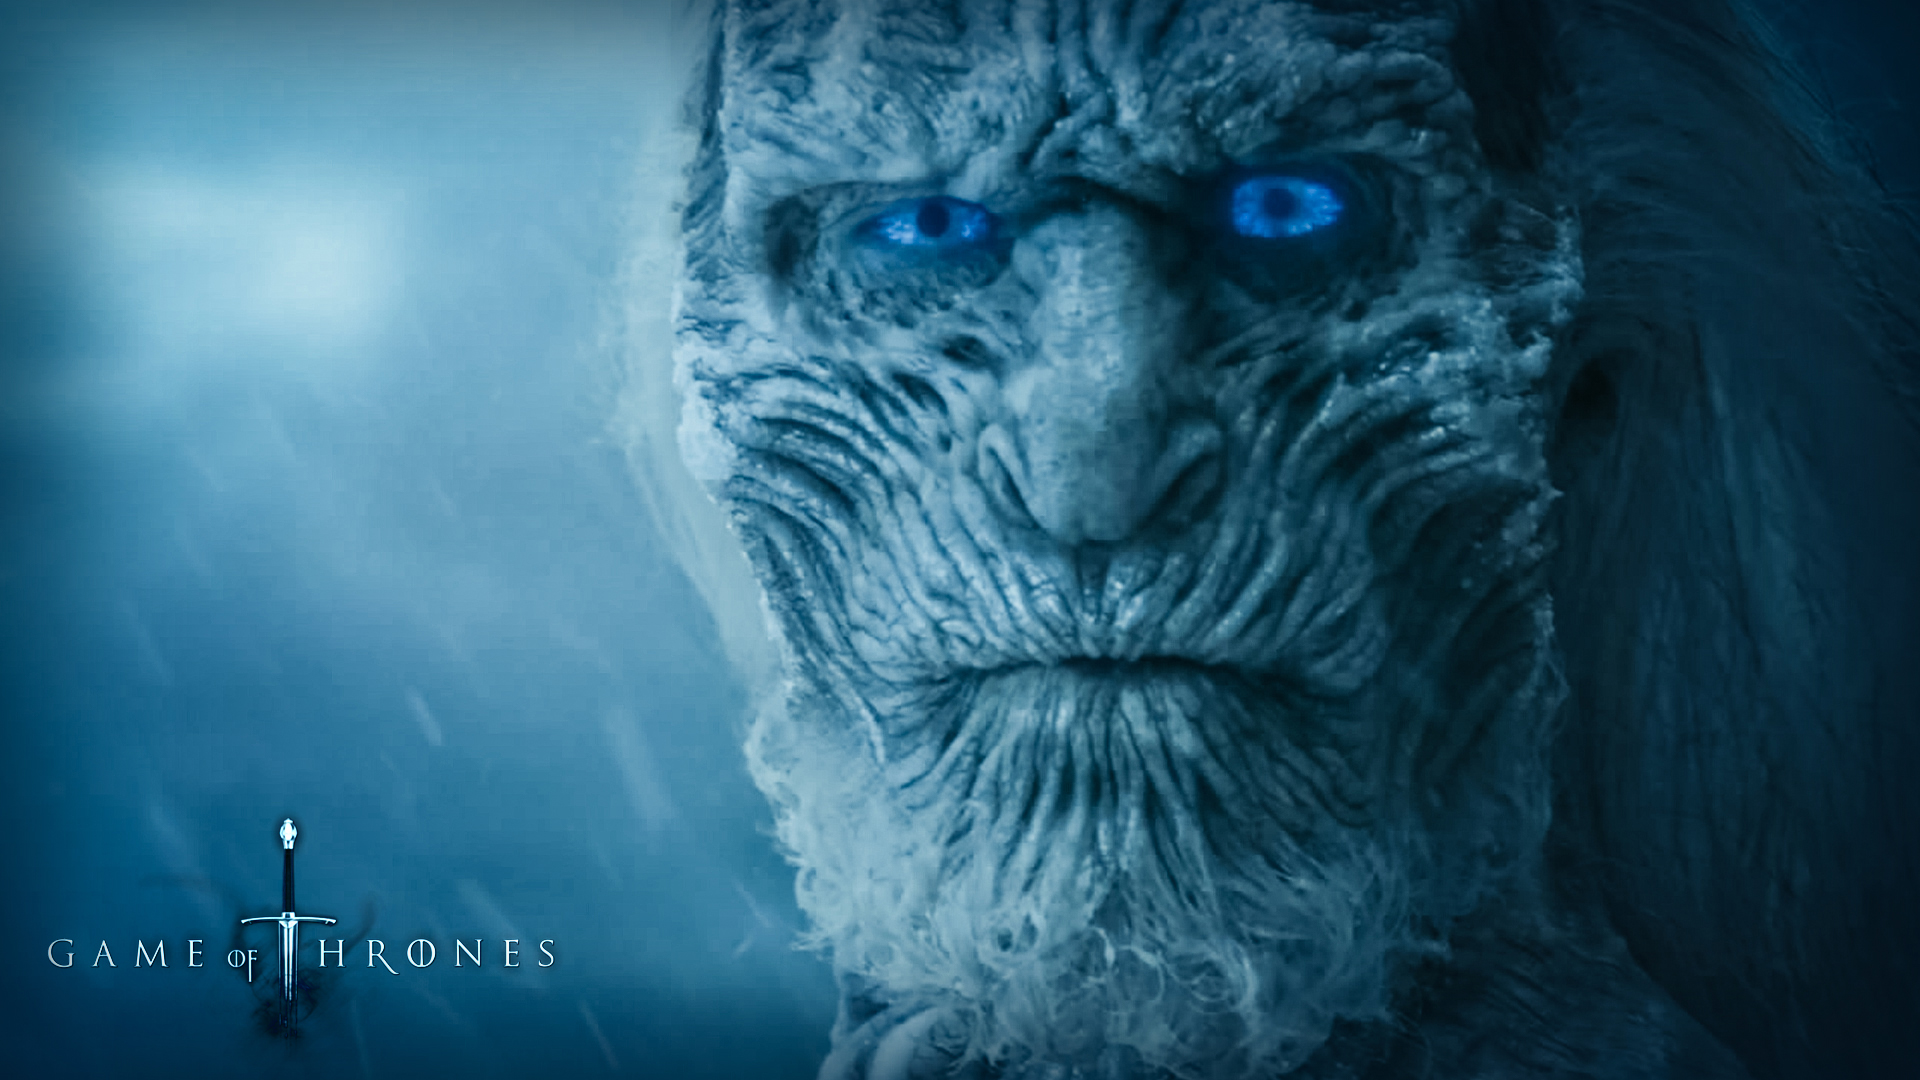 Game of Thrones Season 4 Wallpapers for iPad 1920x1080